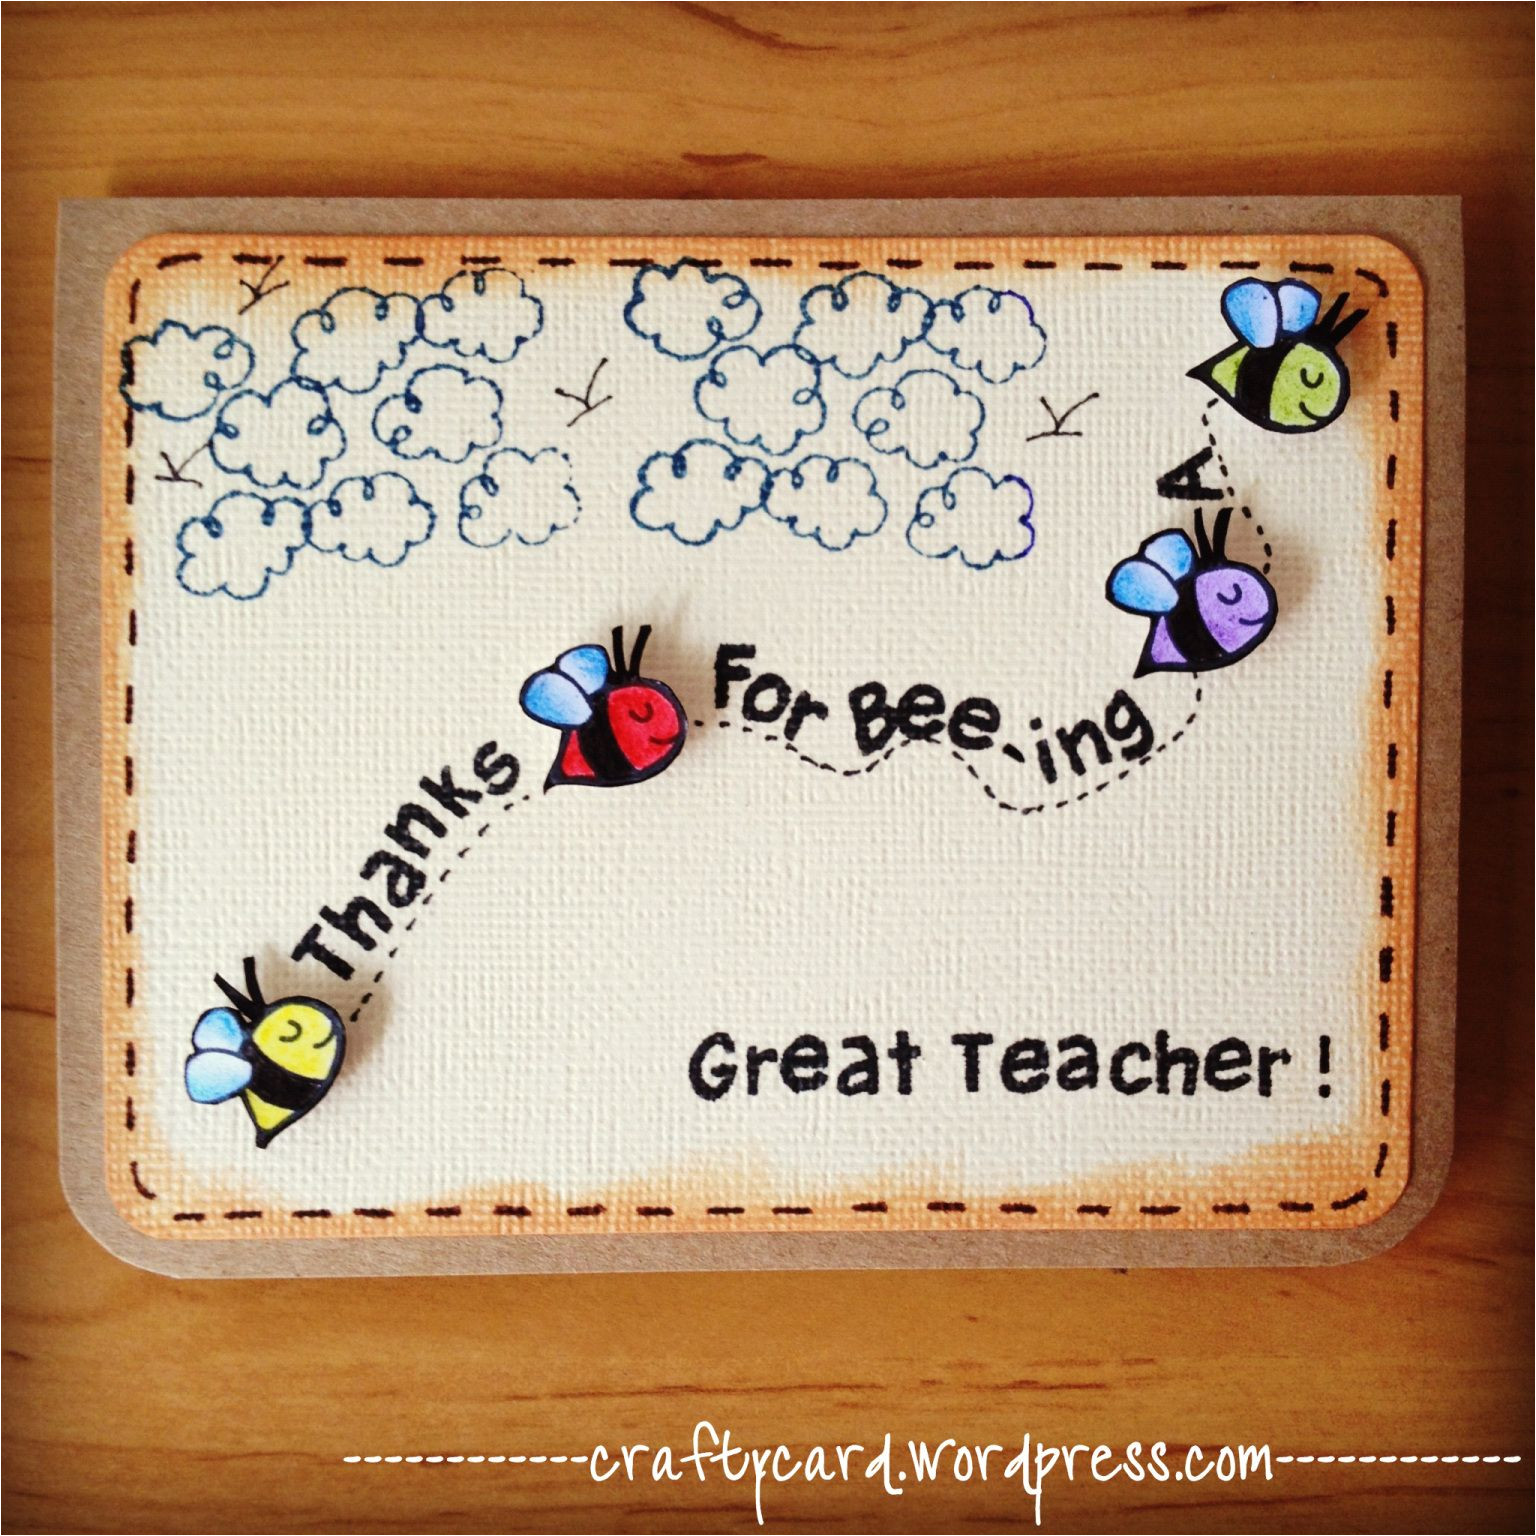 Teachers Day Card for Kids M203 Thanks for Bee Ing A Great Teacher with Images